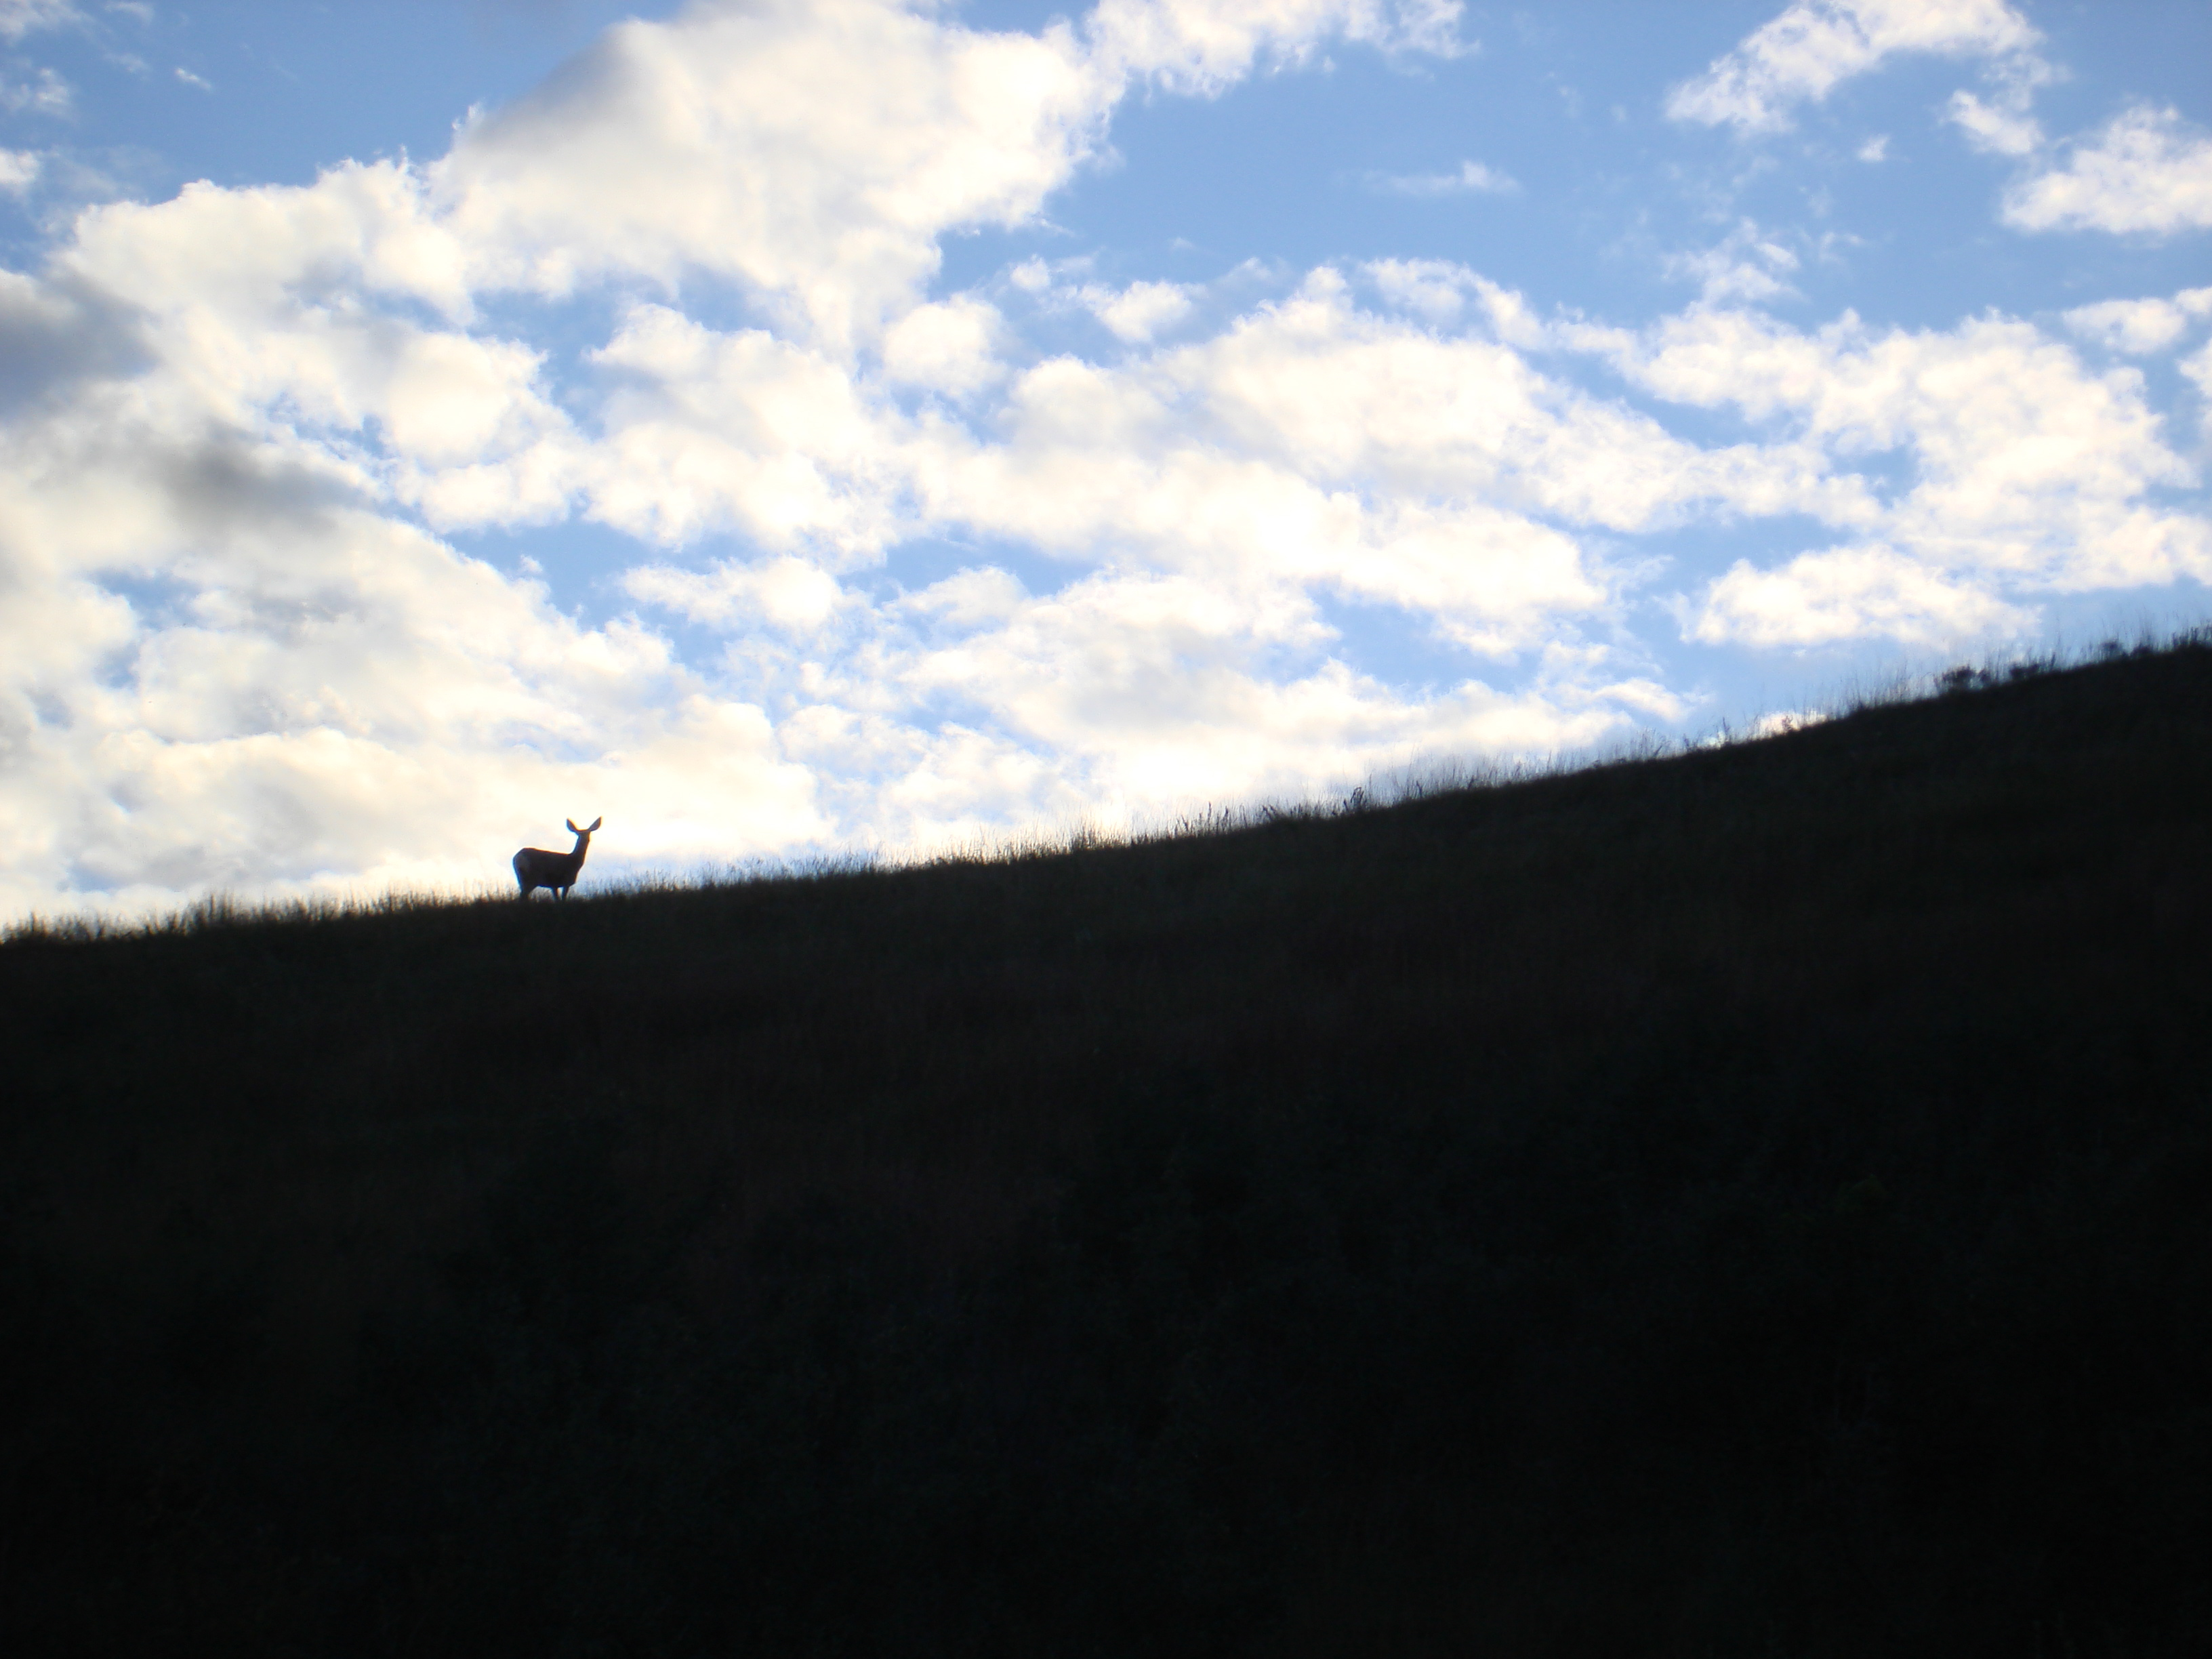 Deer on horizon